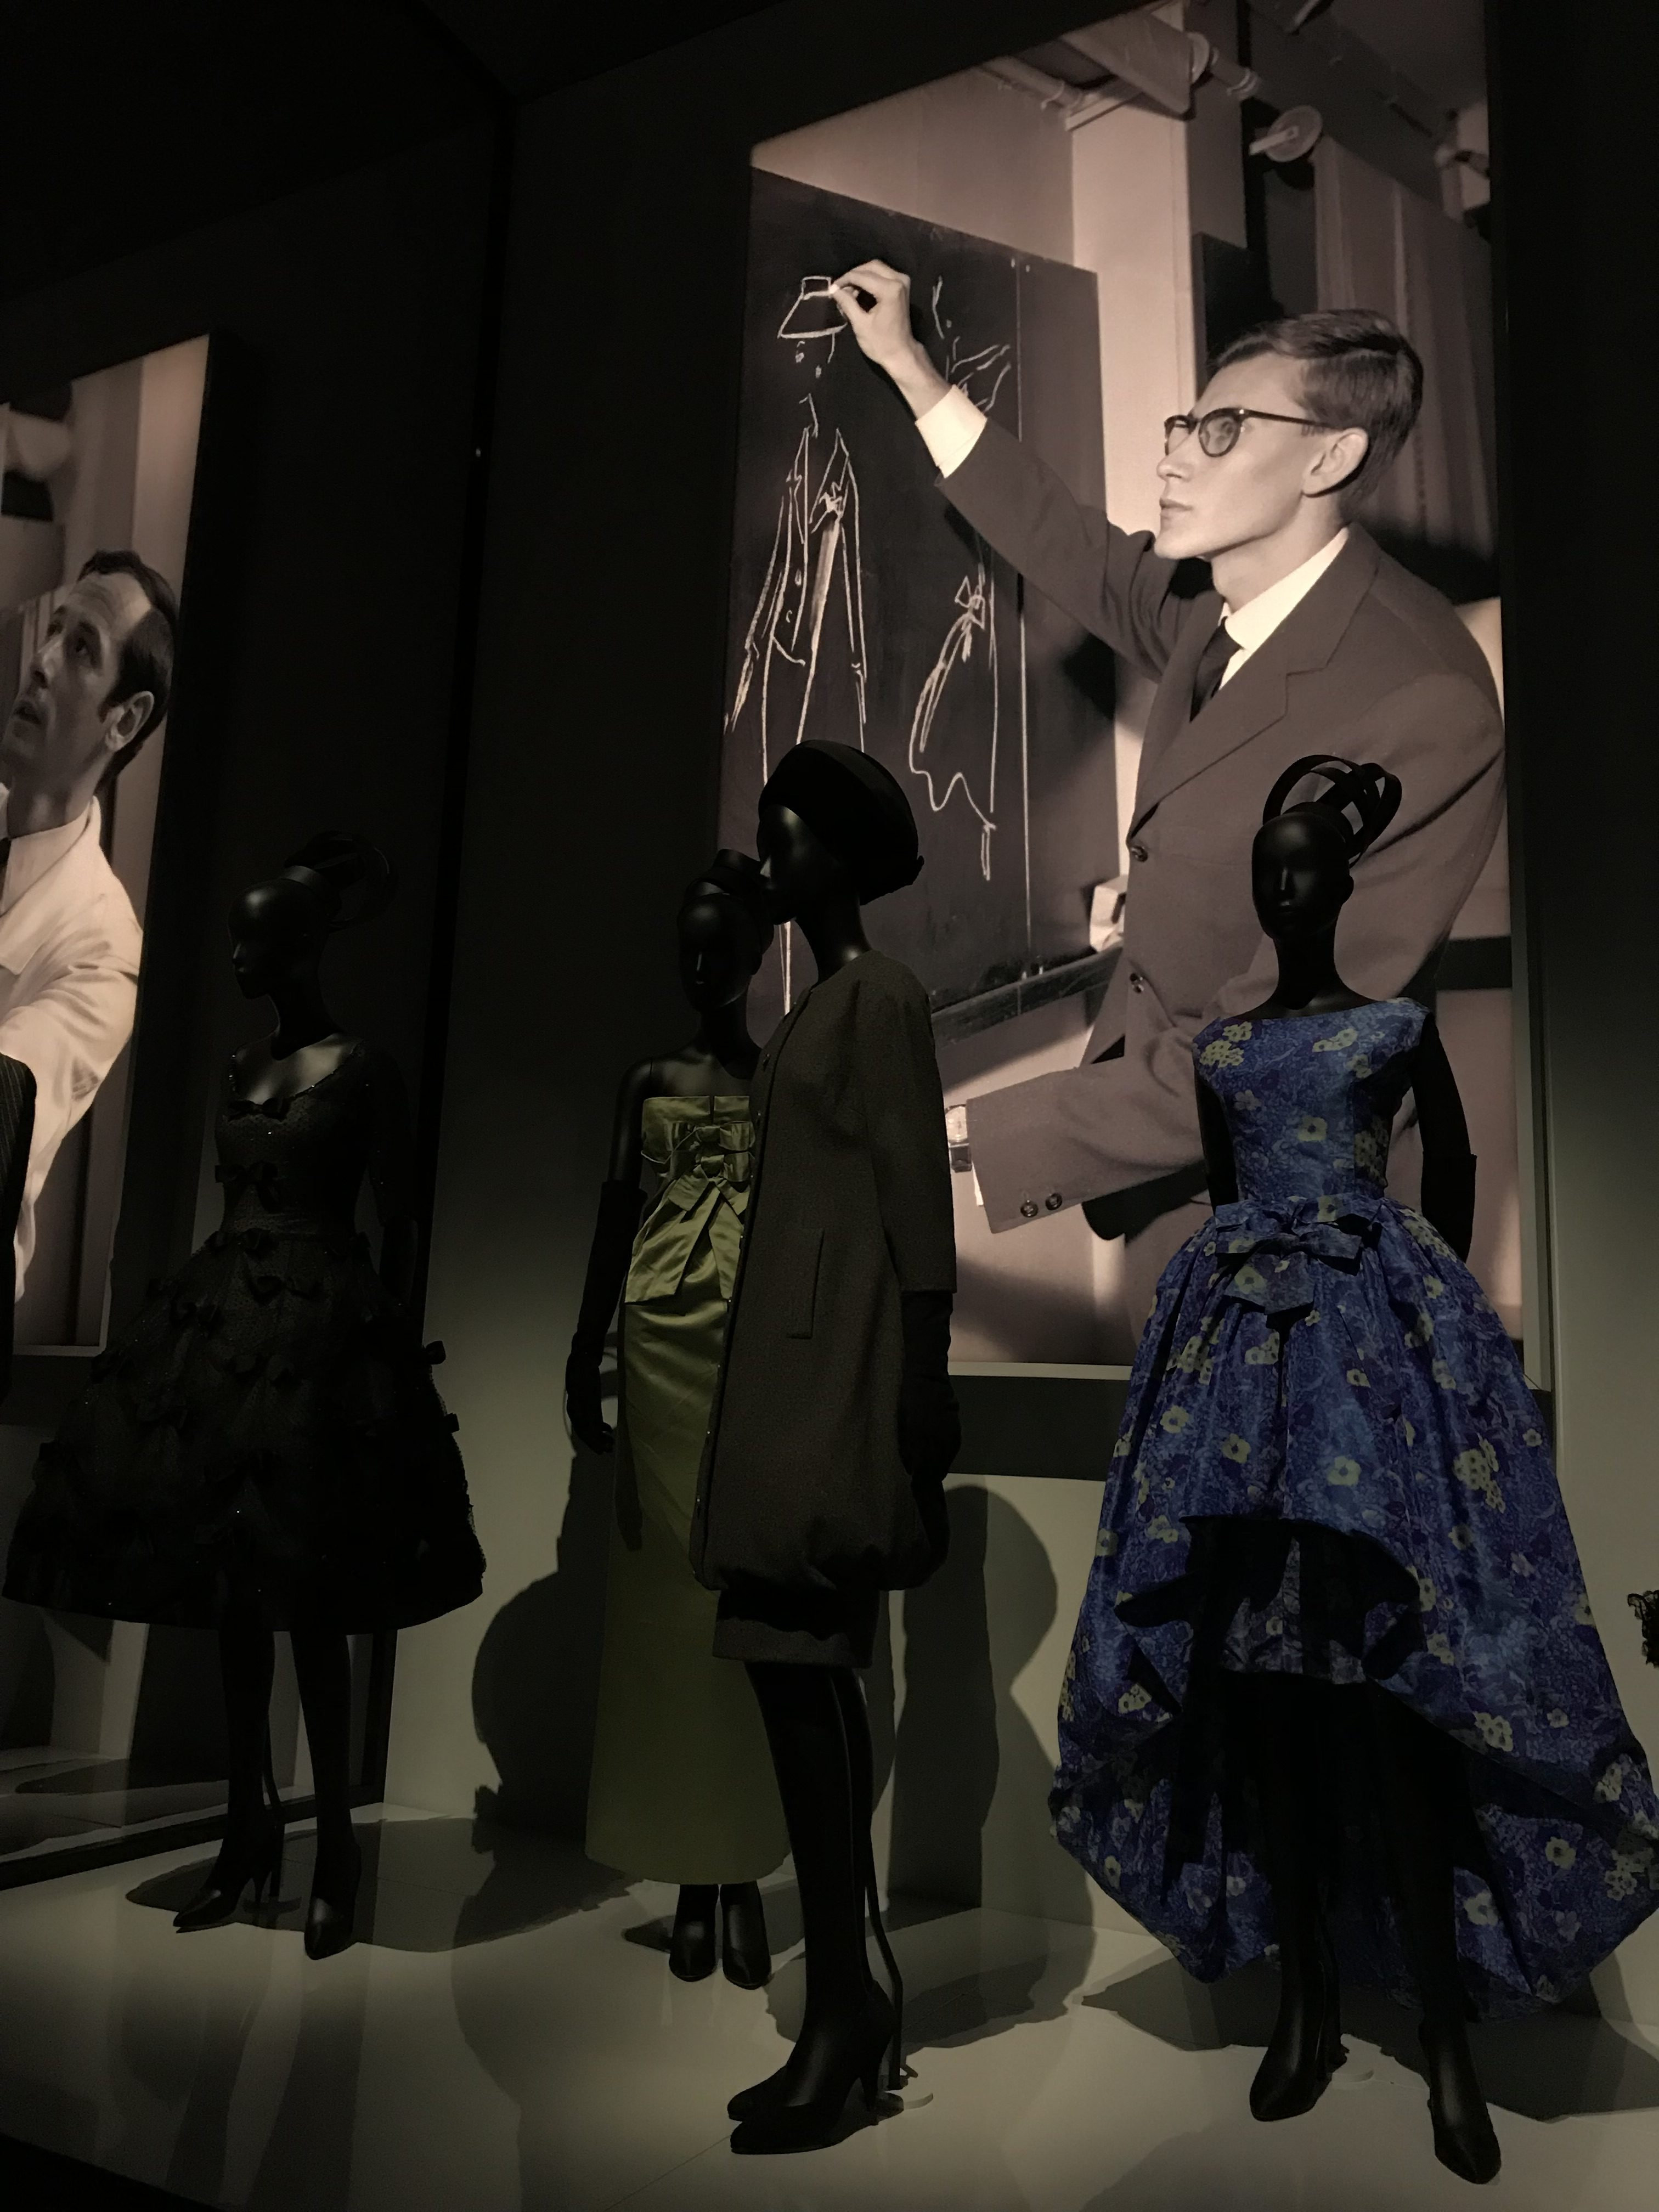 Saint Laurent - Christian Dior exhibition